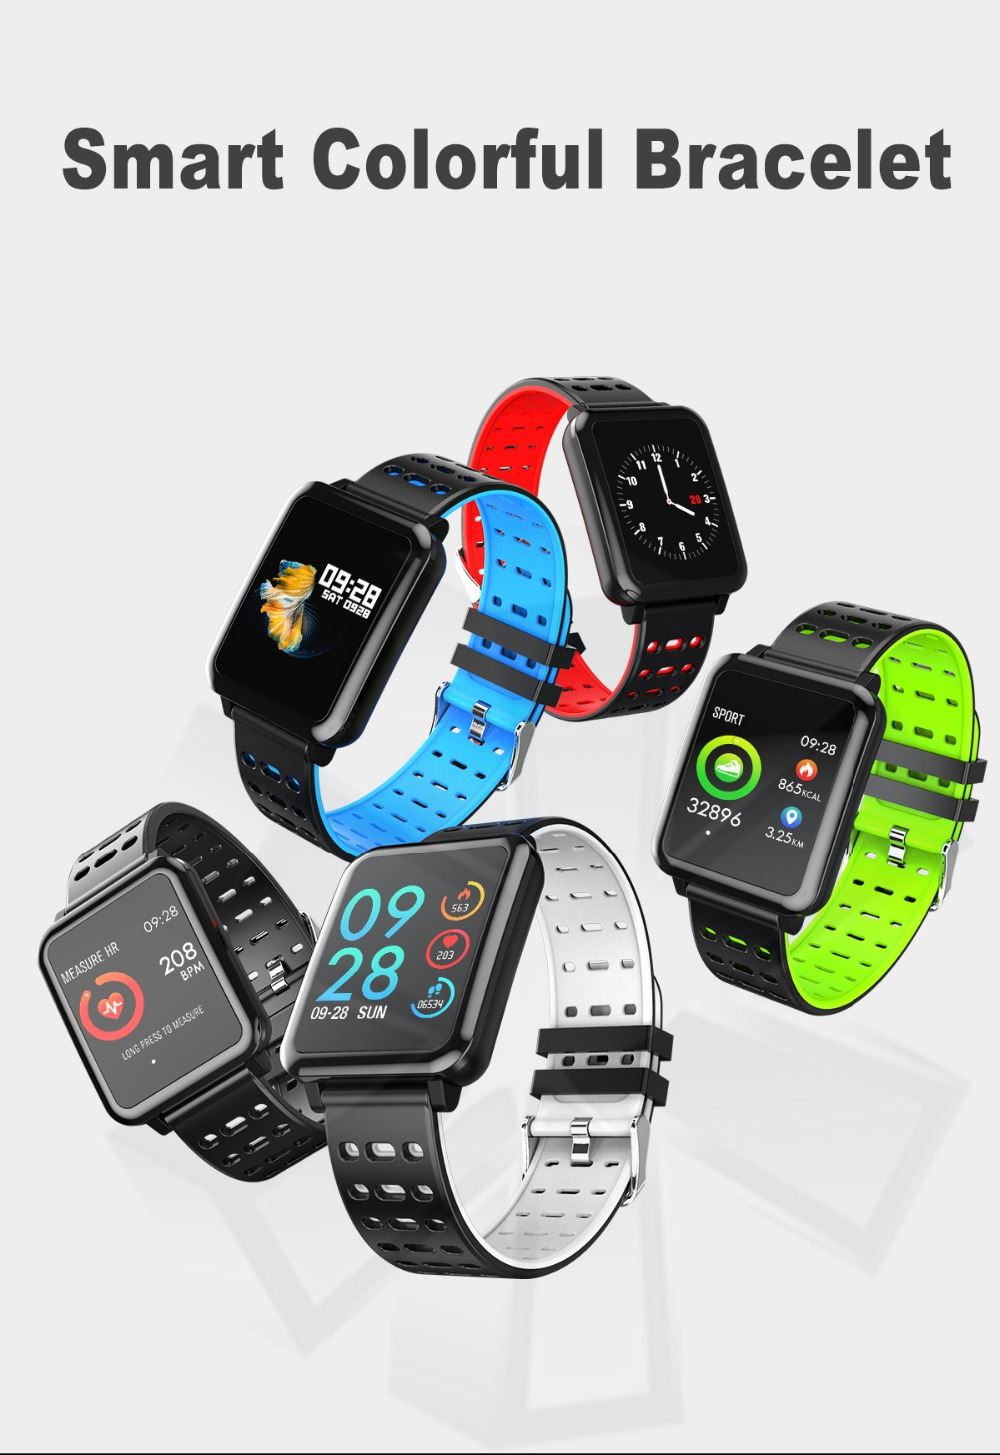 T2 Smartwatch IP67 Waterproof Wearable Device Bluetooth Pedometer Heart Rate Monitor Color Display Smart Watch For AndroidIOS (1)